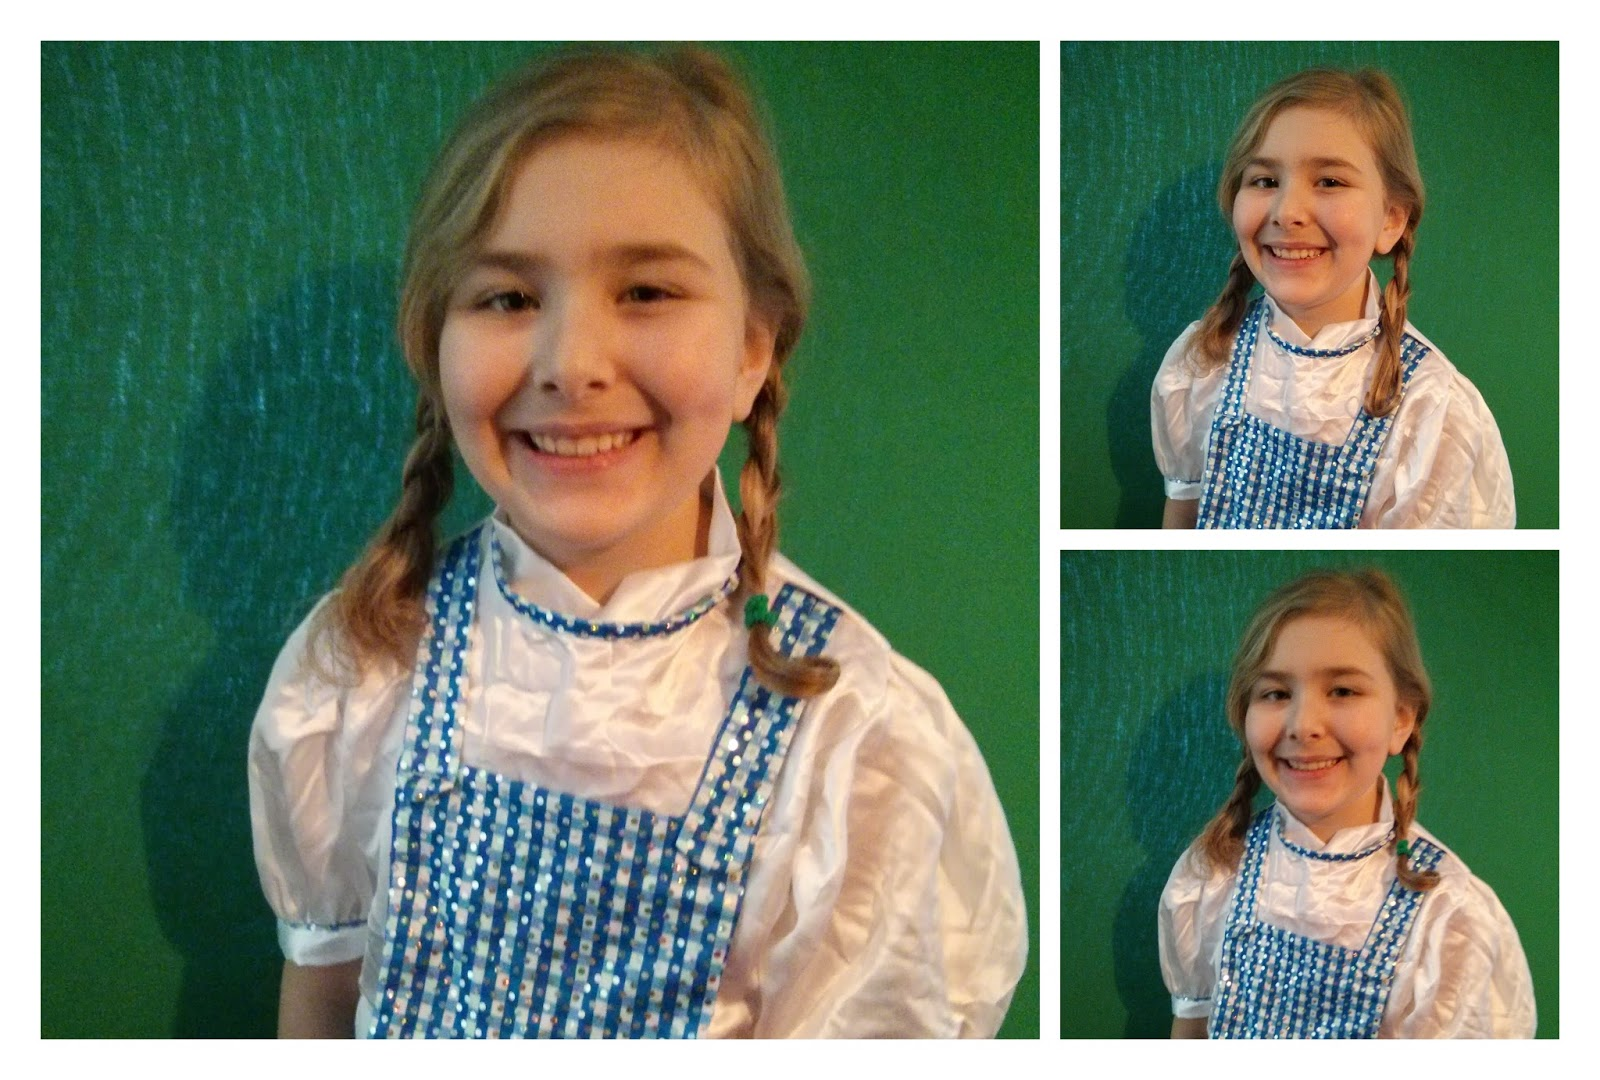 Top Ender as Dorothy Gale